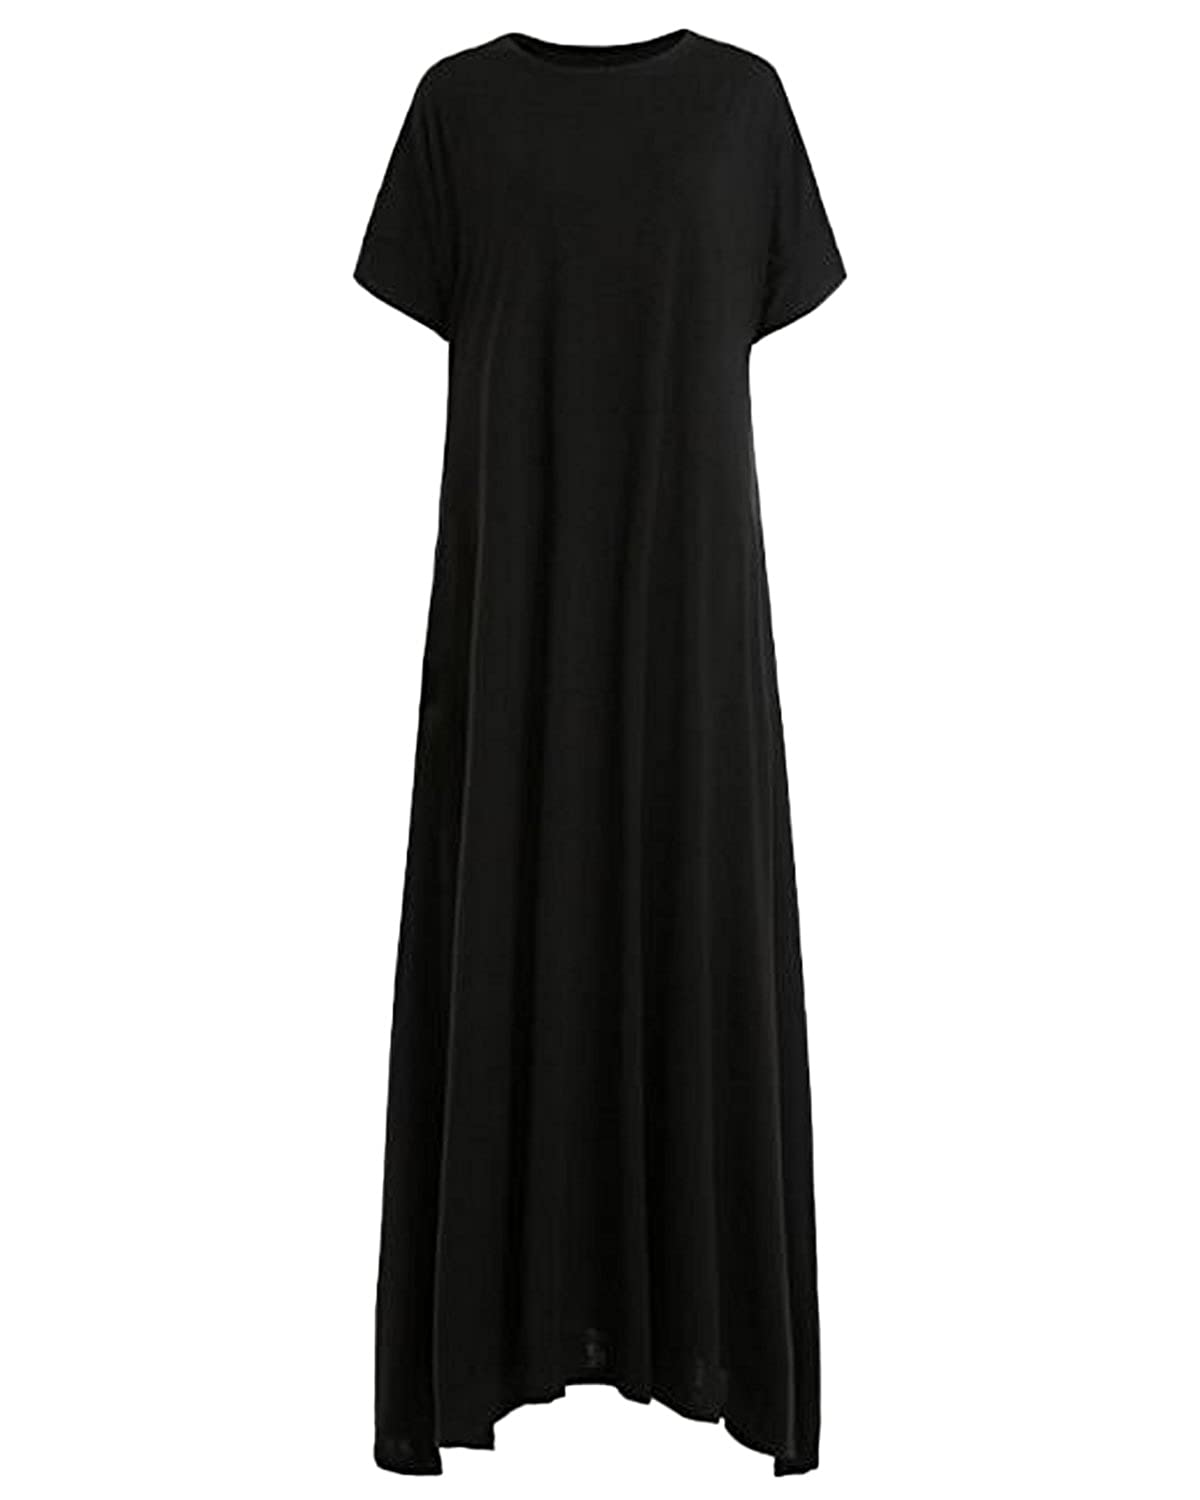 479019f5b1 Kidsform Women's Loose Maxi Dress Short Sleeve Casual Kaftan Party Long  Dresses Plain Solid with Pockets at Amazon Women's Clothing store: